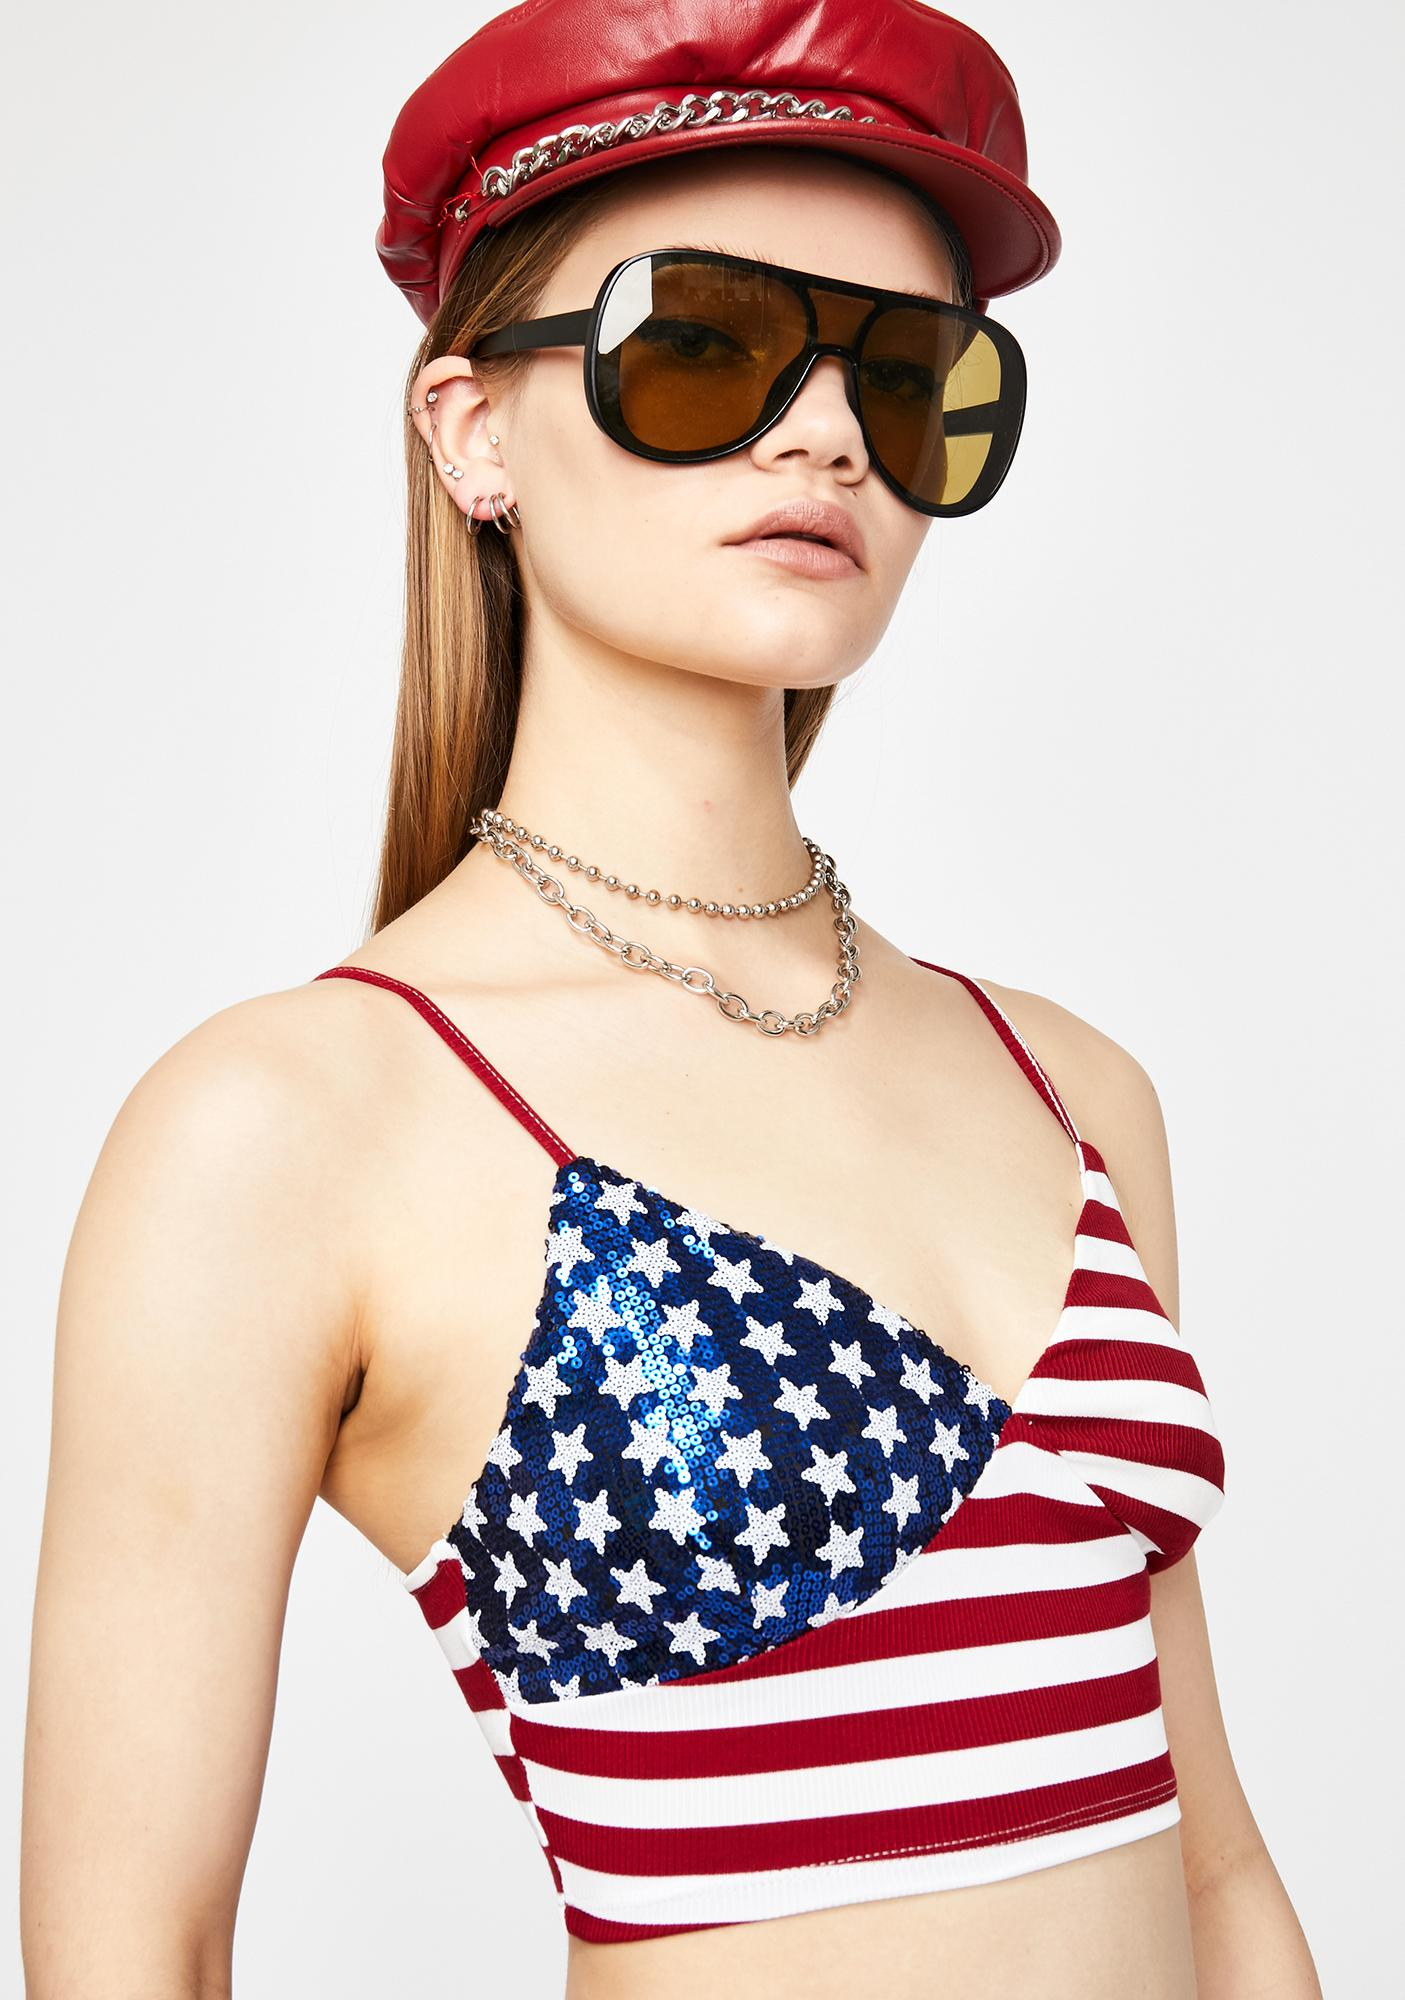 Star Spangled Sass Crop Top